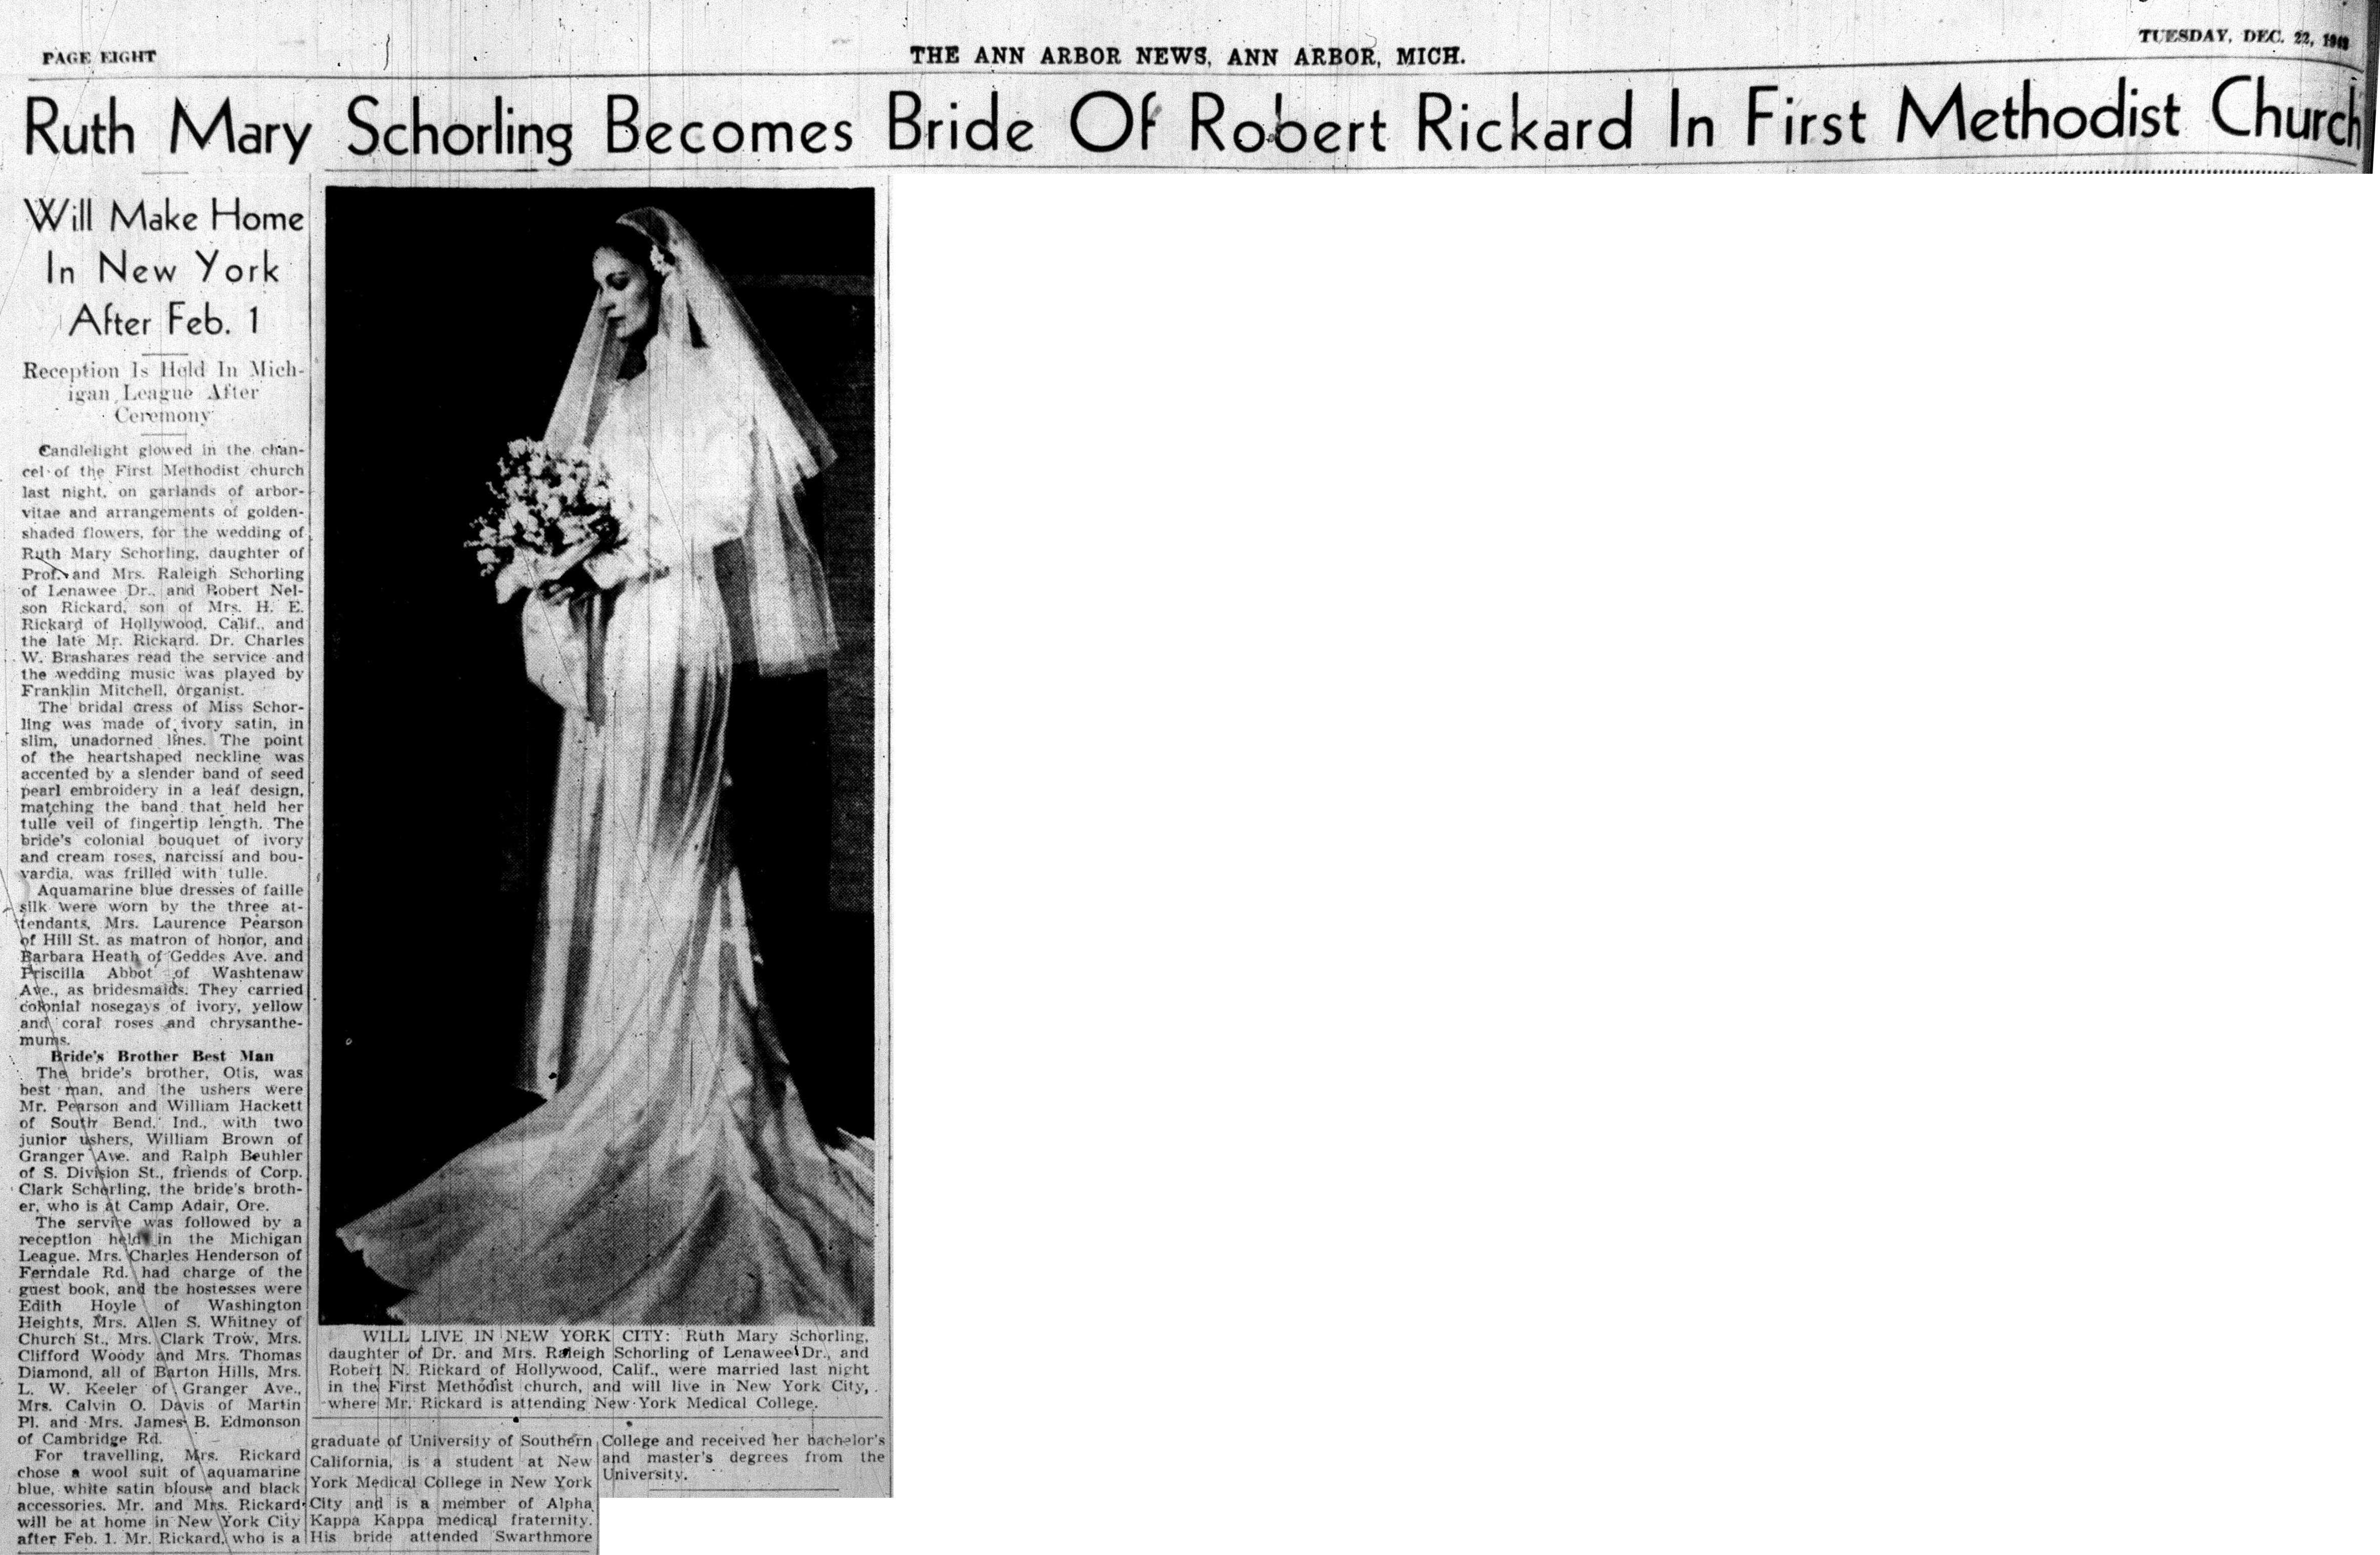 Ruth Mary Schorling Becomes Bride Of Robert Rickard In First Methodist Church image